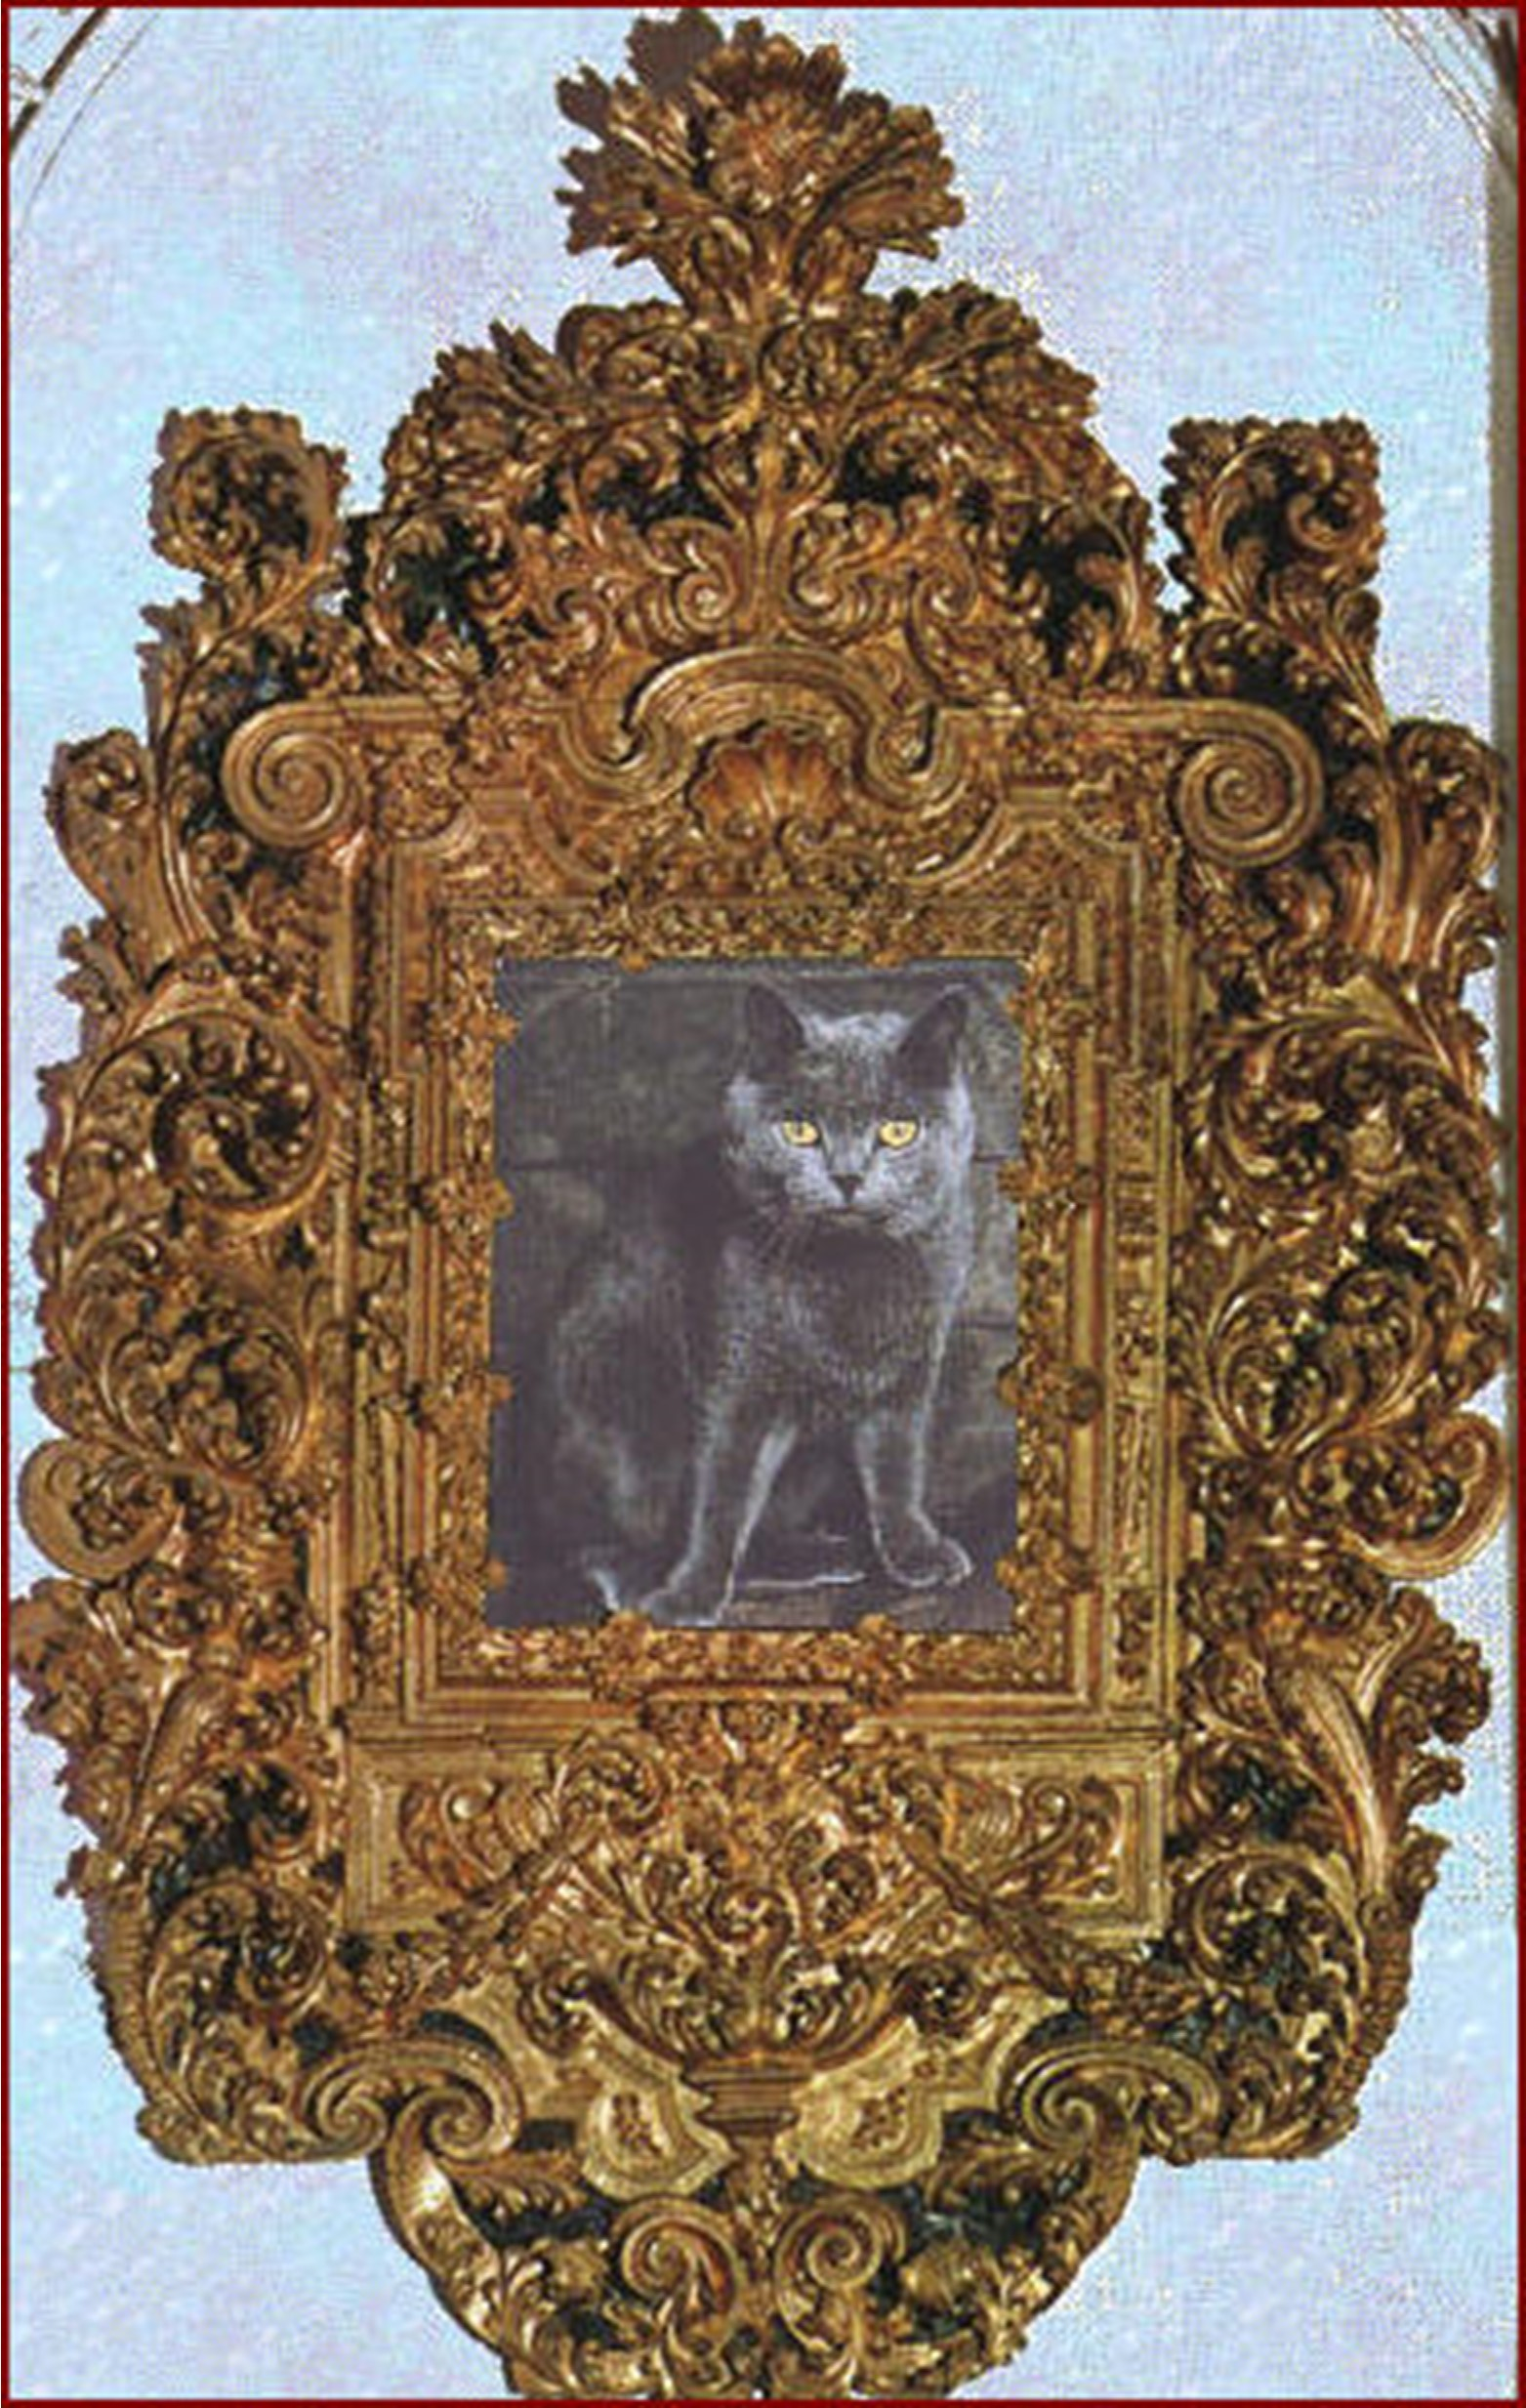 autobiography of a cat Mourka: the autobiography of a cat [tanaquil le clercq, martha swope] on amazoncom free shipping on qualifying offers mourka, an extraordinary alley cat is one of famed choreographer george balanchine's prize pupils he has learned to do entre-chats.